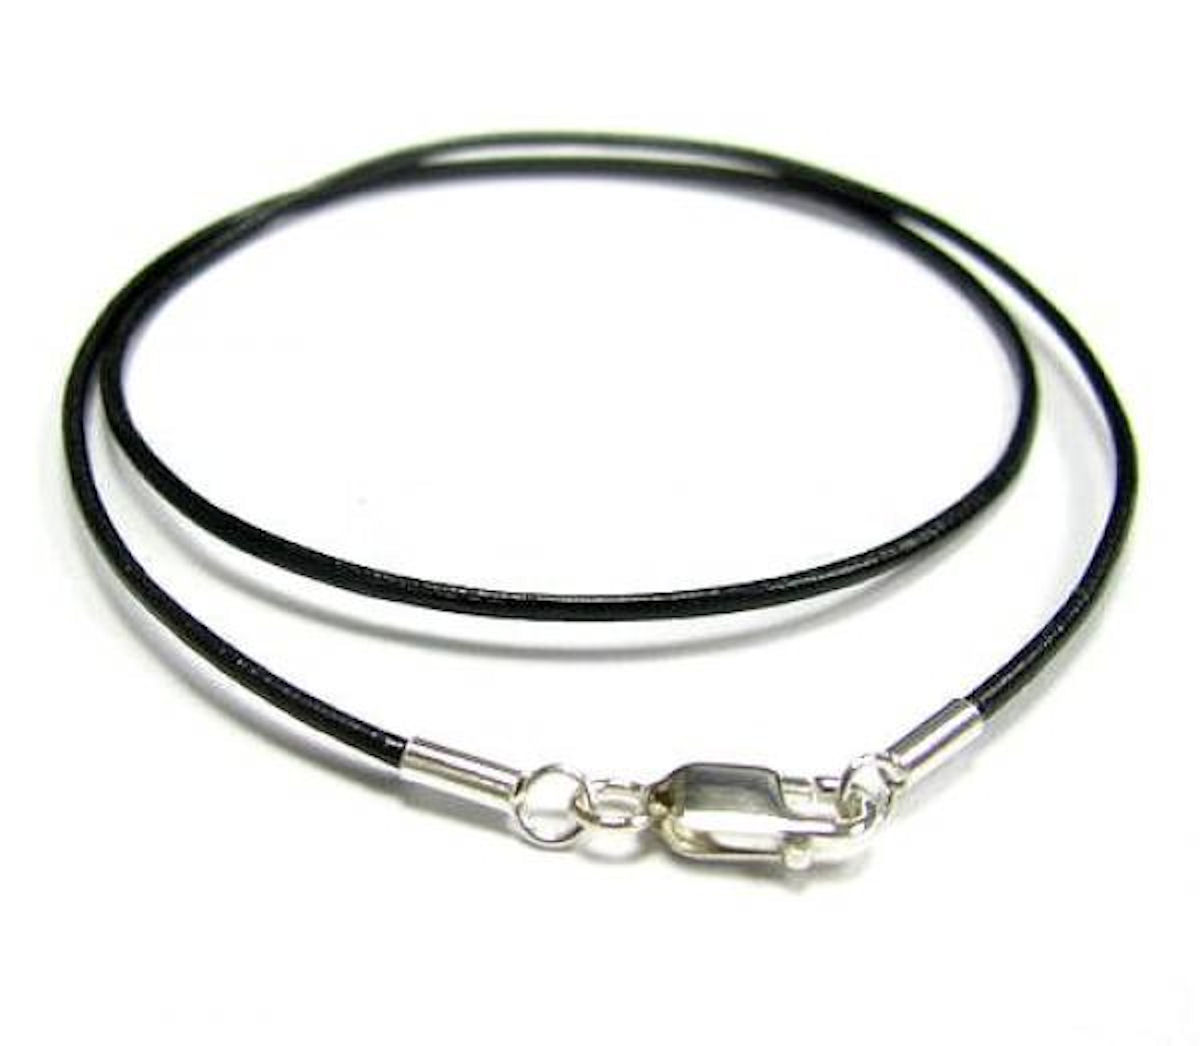 1x Sterling Silver Black leather cord 1mm choker necklace 16""